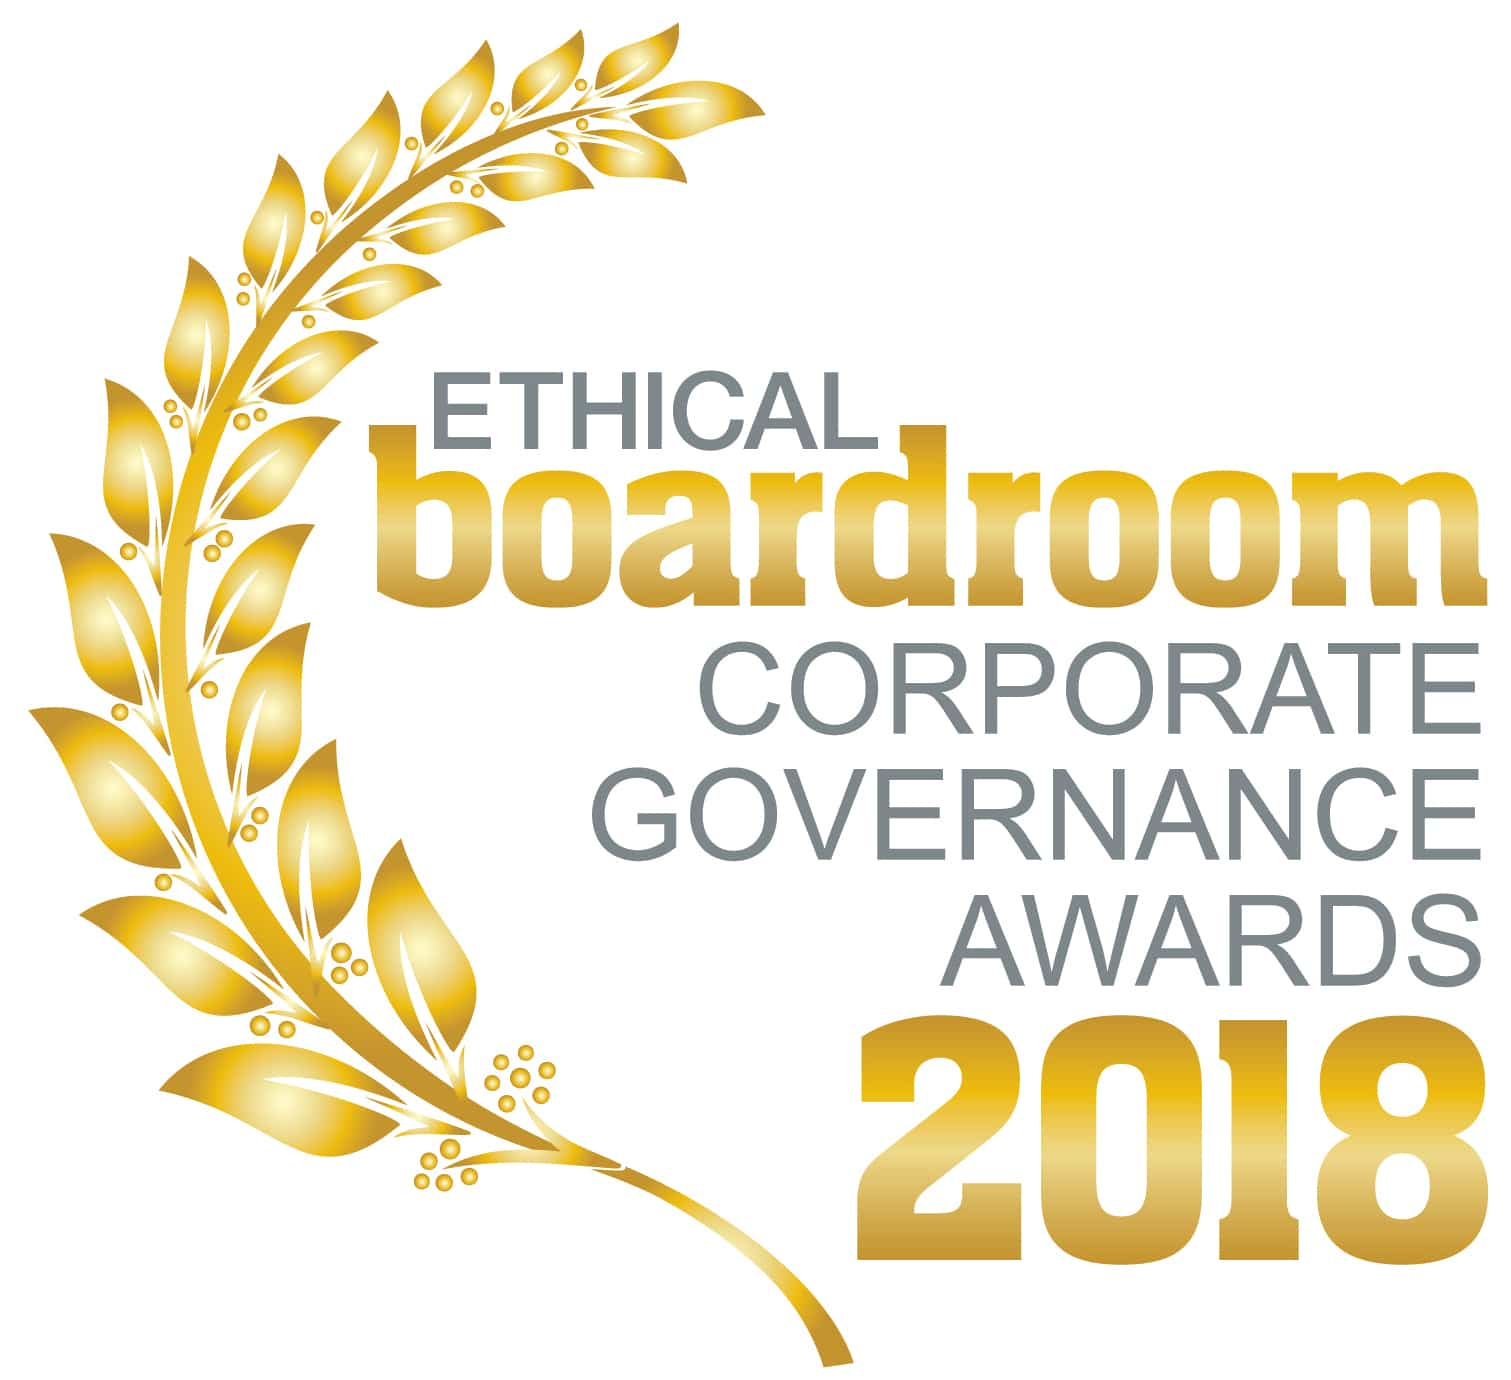 Corporate Governance Winners 2018 - Europe | Ethical Boardroom